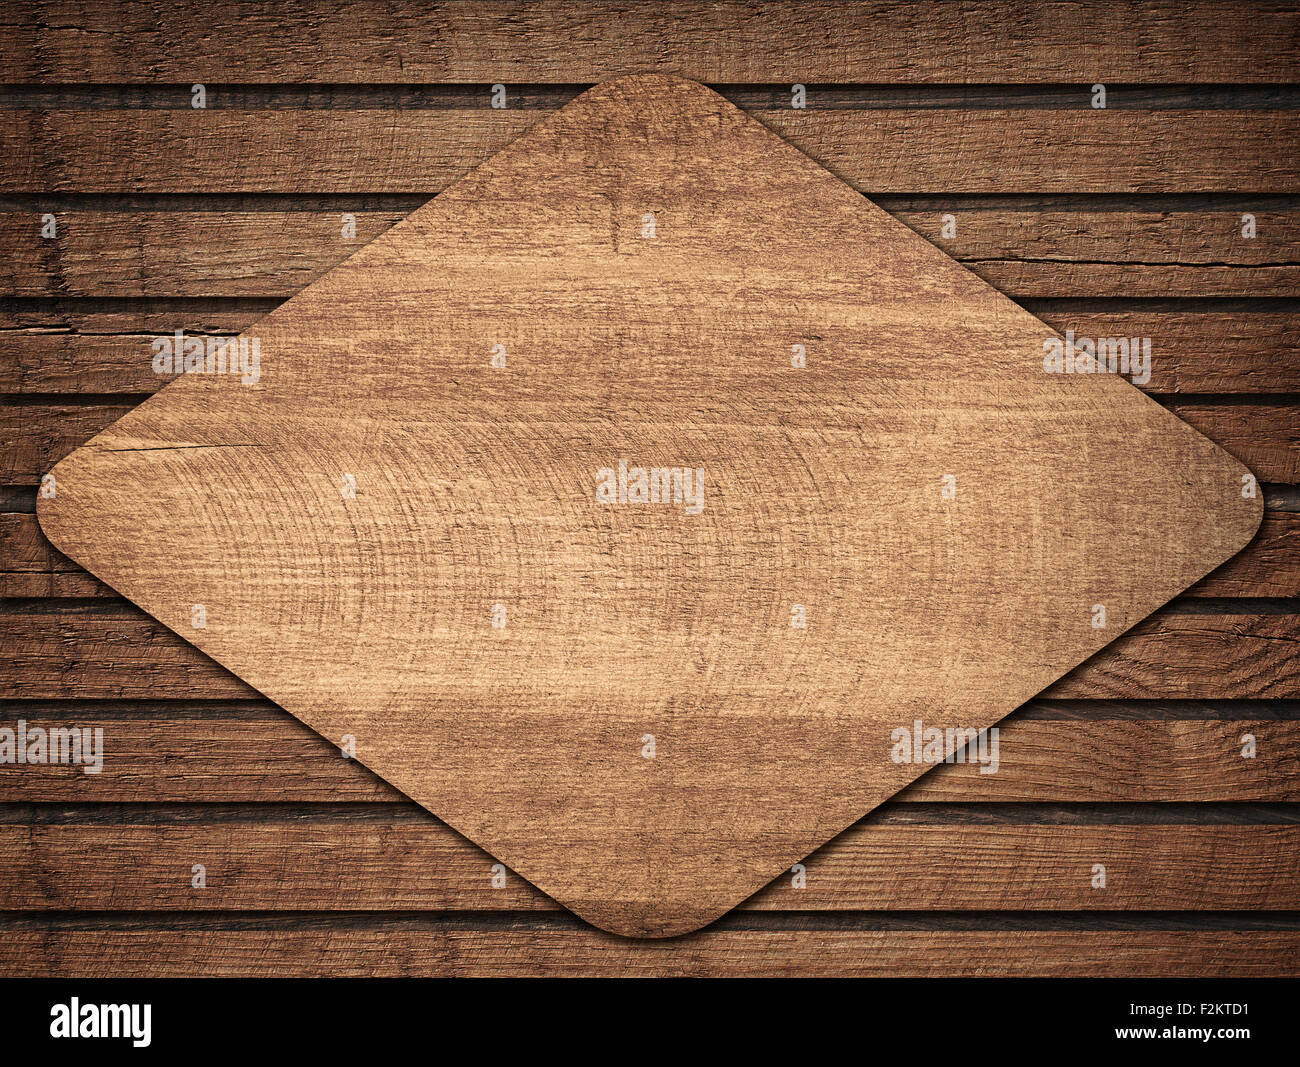 Brown wooden lozenge with shadow on planks wall - Stock Image